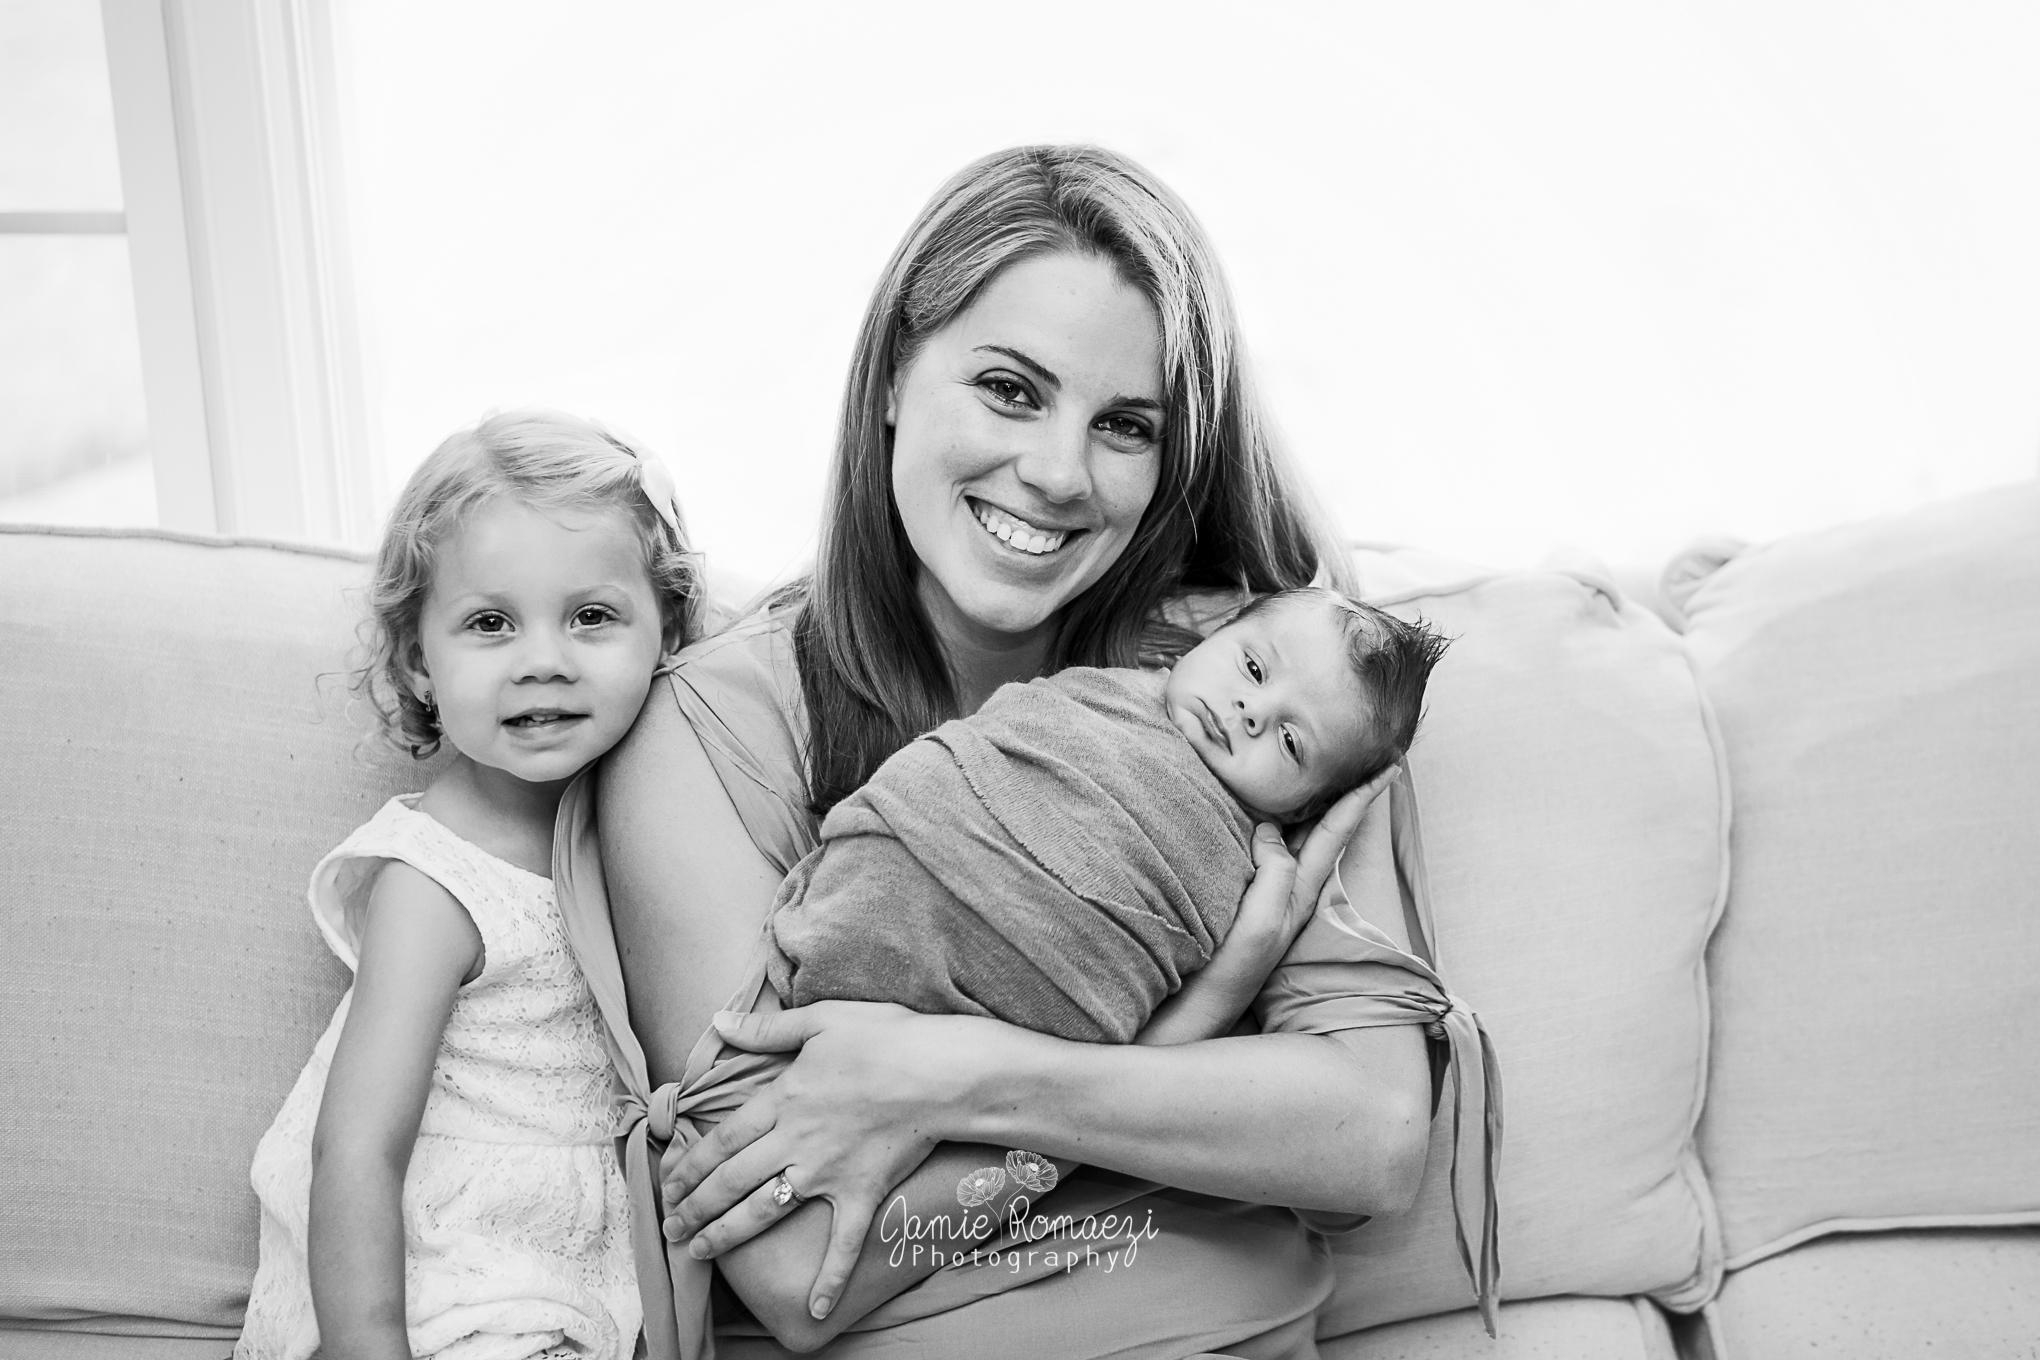 Black and white family photo, mom sister and baby